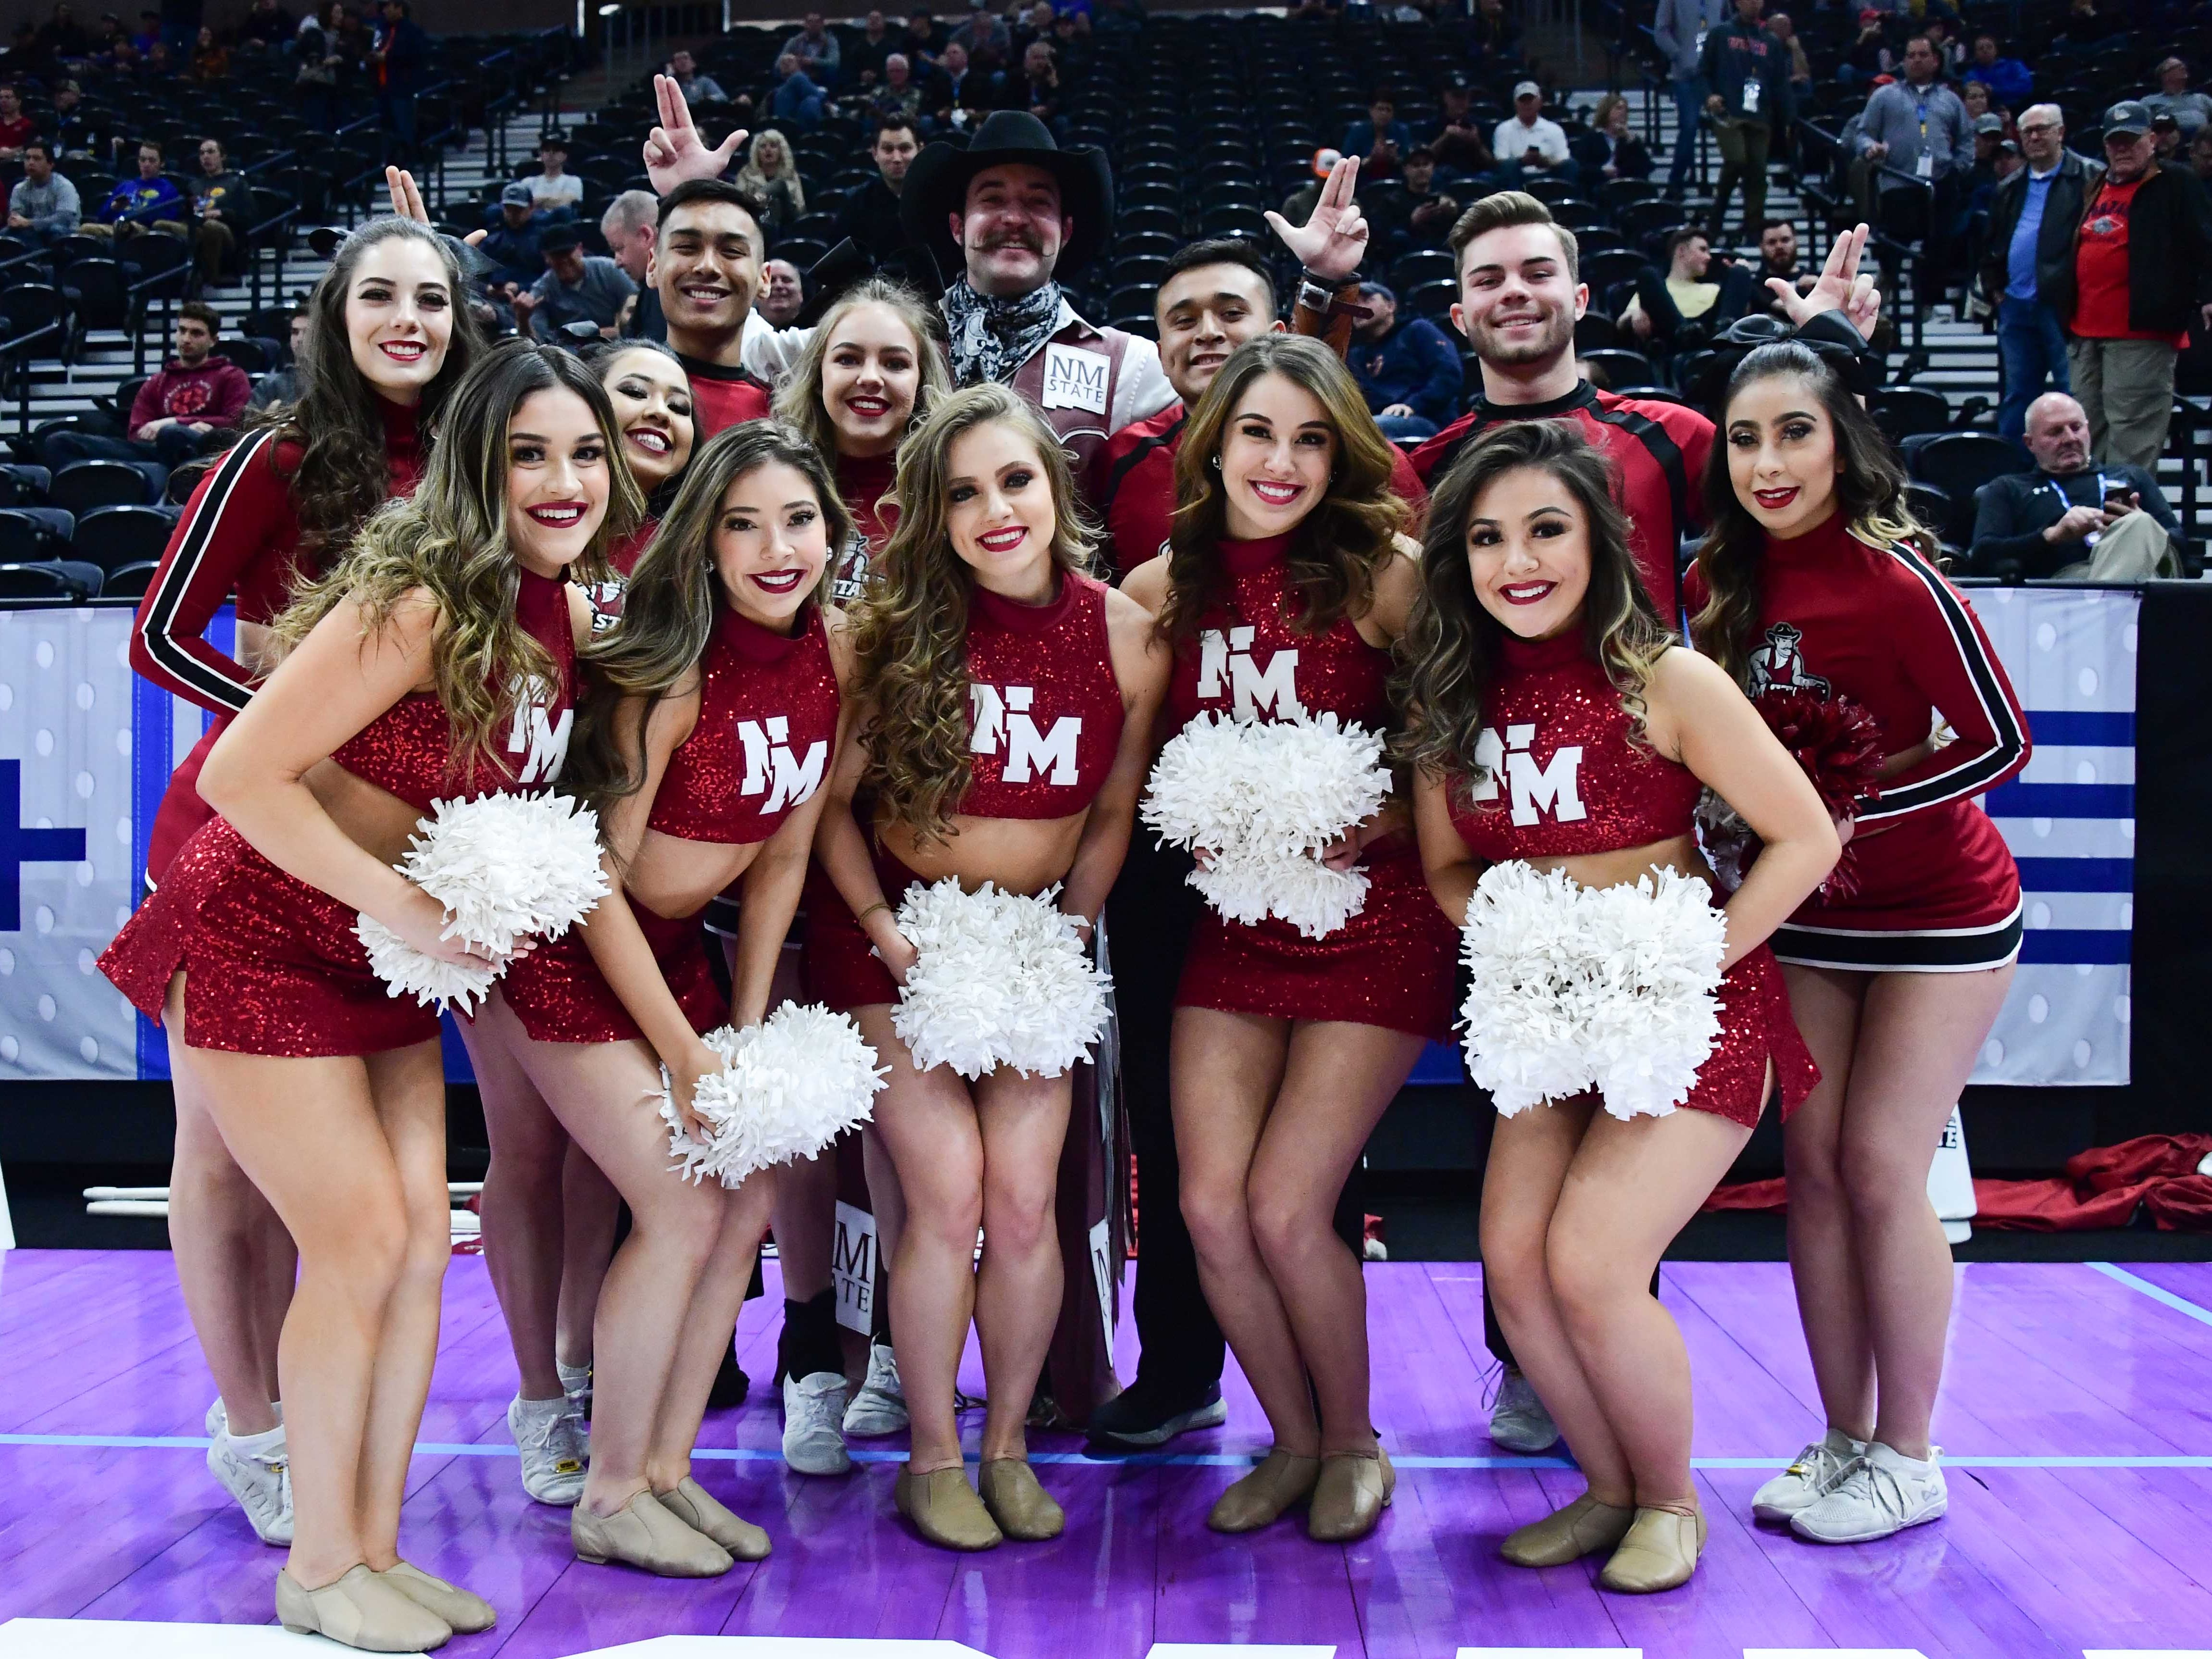 First round: The New Mexico State Aggies cheer team poses before the game against the Auburn Tigers.